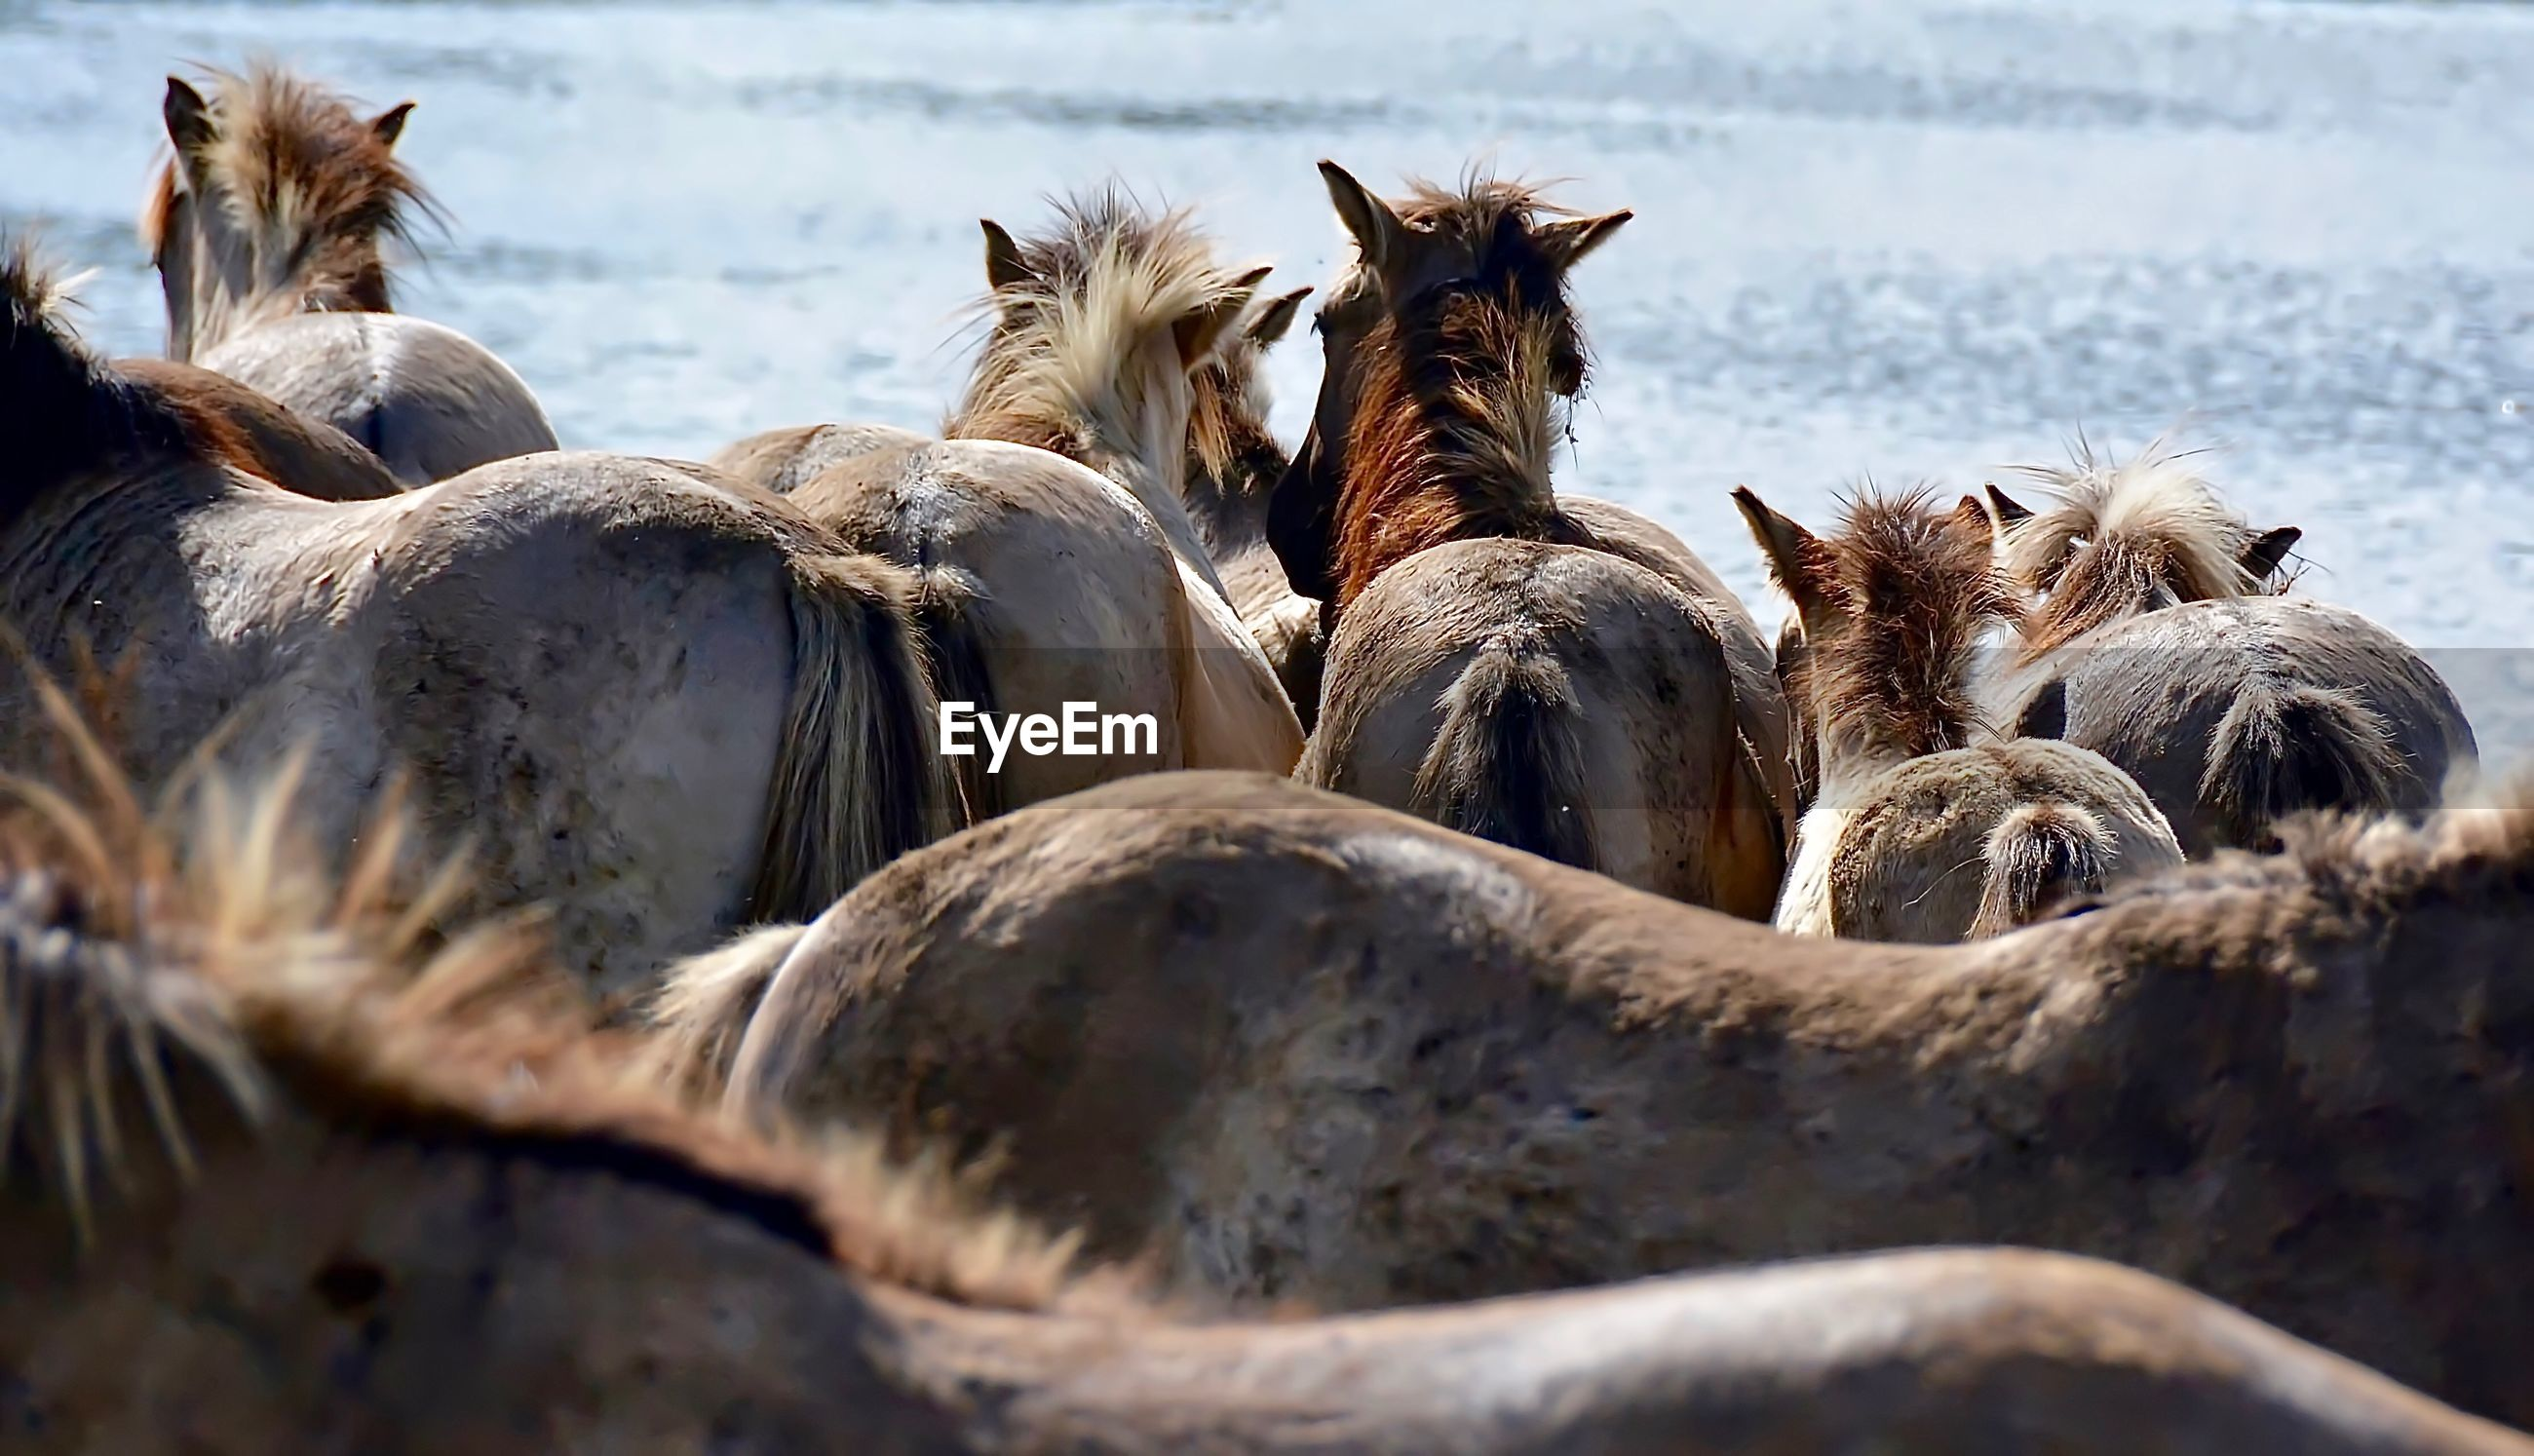 High angle view of horses by sea